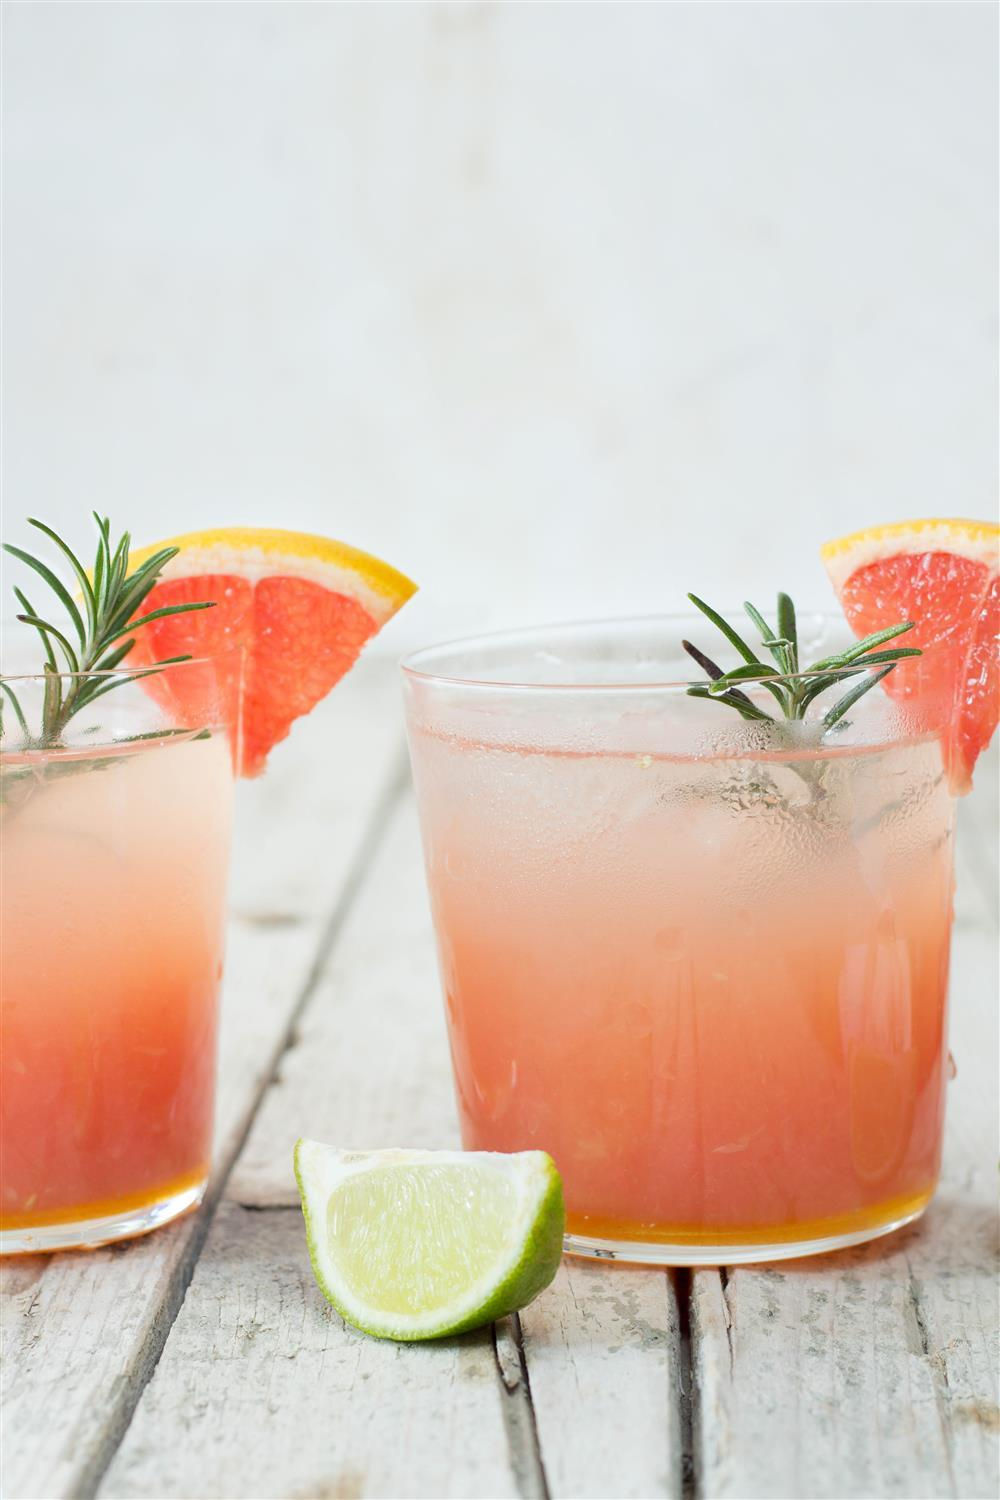 Use Your Noodles - Grapefruit-Lime Coctail with Ginger and Rosemary